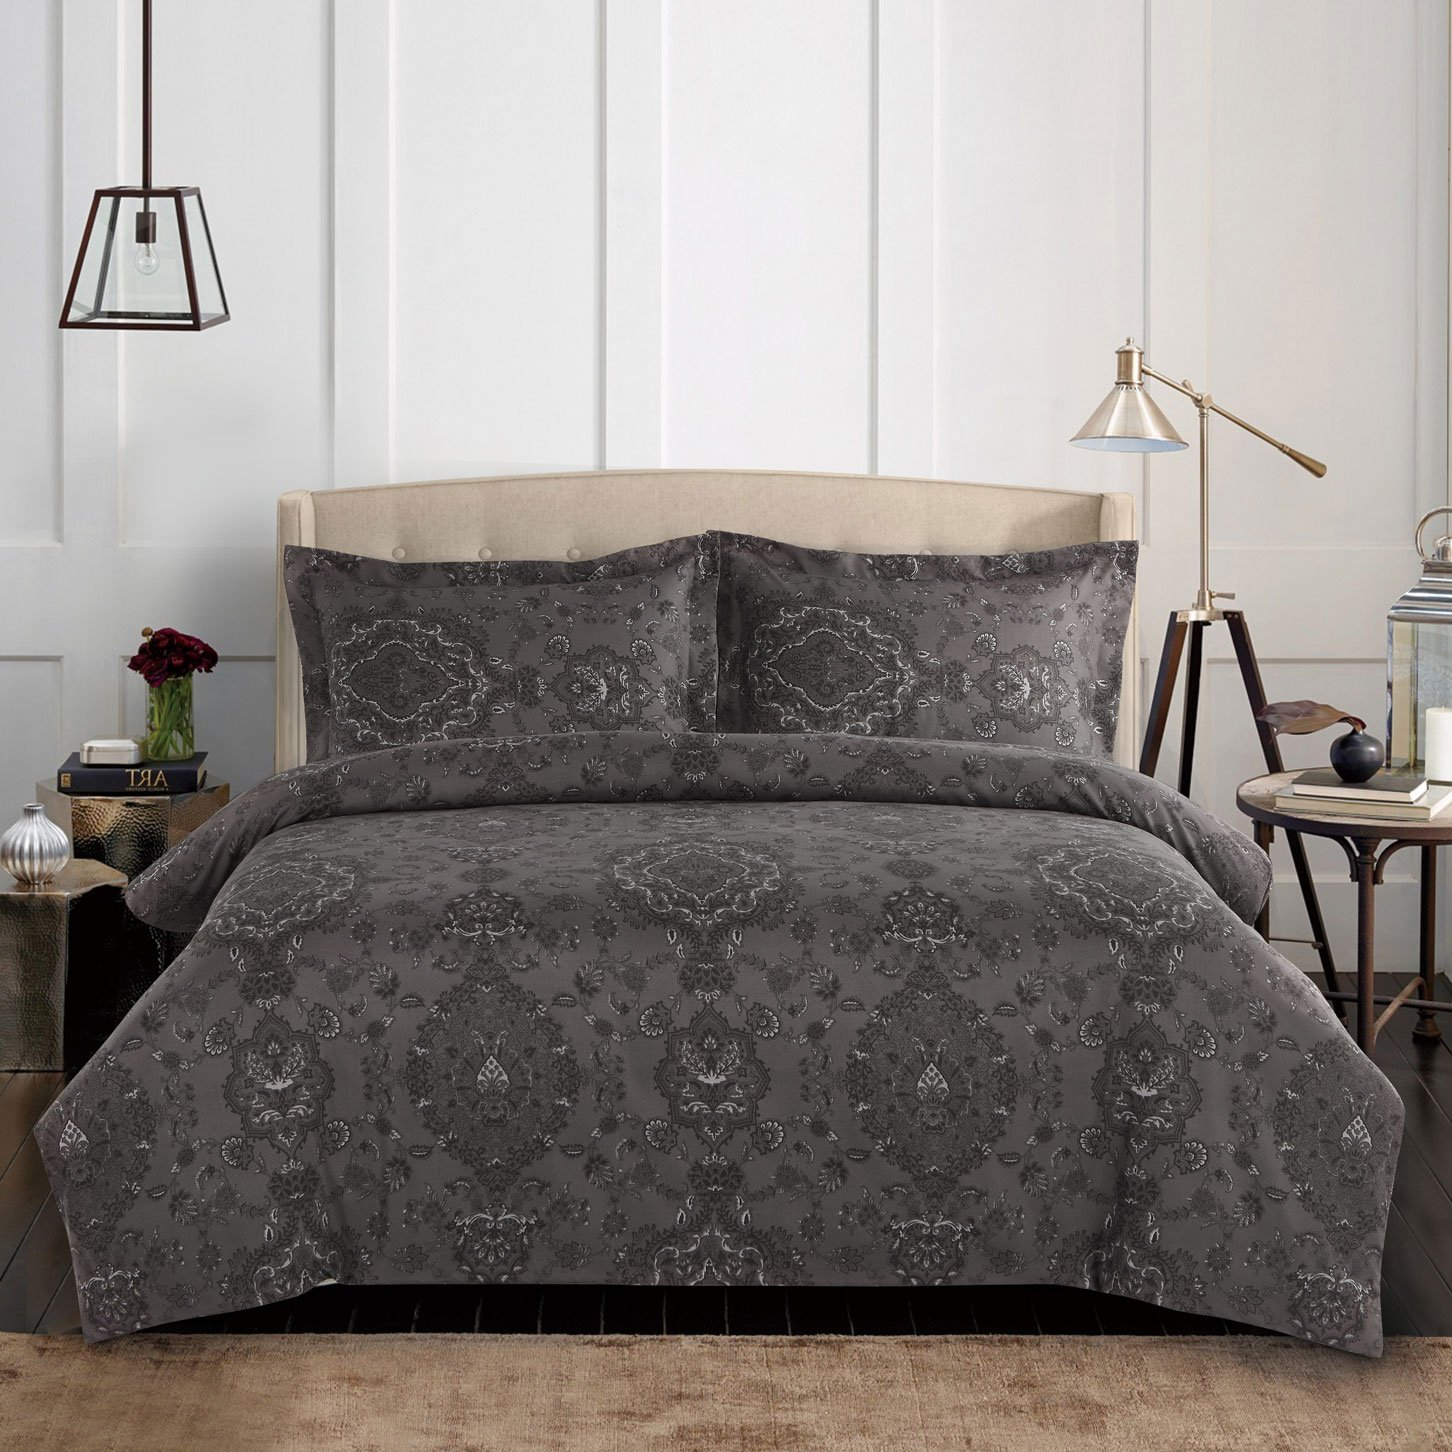 cover duvet egyptian light amazon paris gray covers pinzon sateen queen set full on best sets printed nocrop cotton strategist